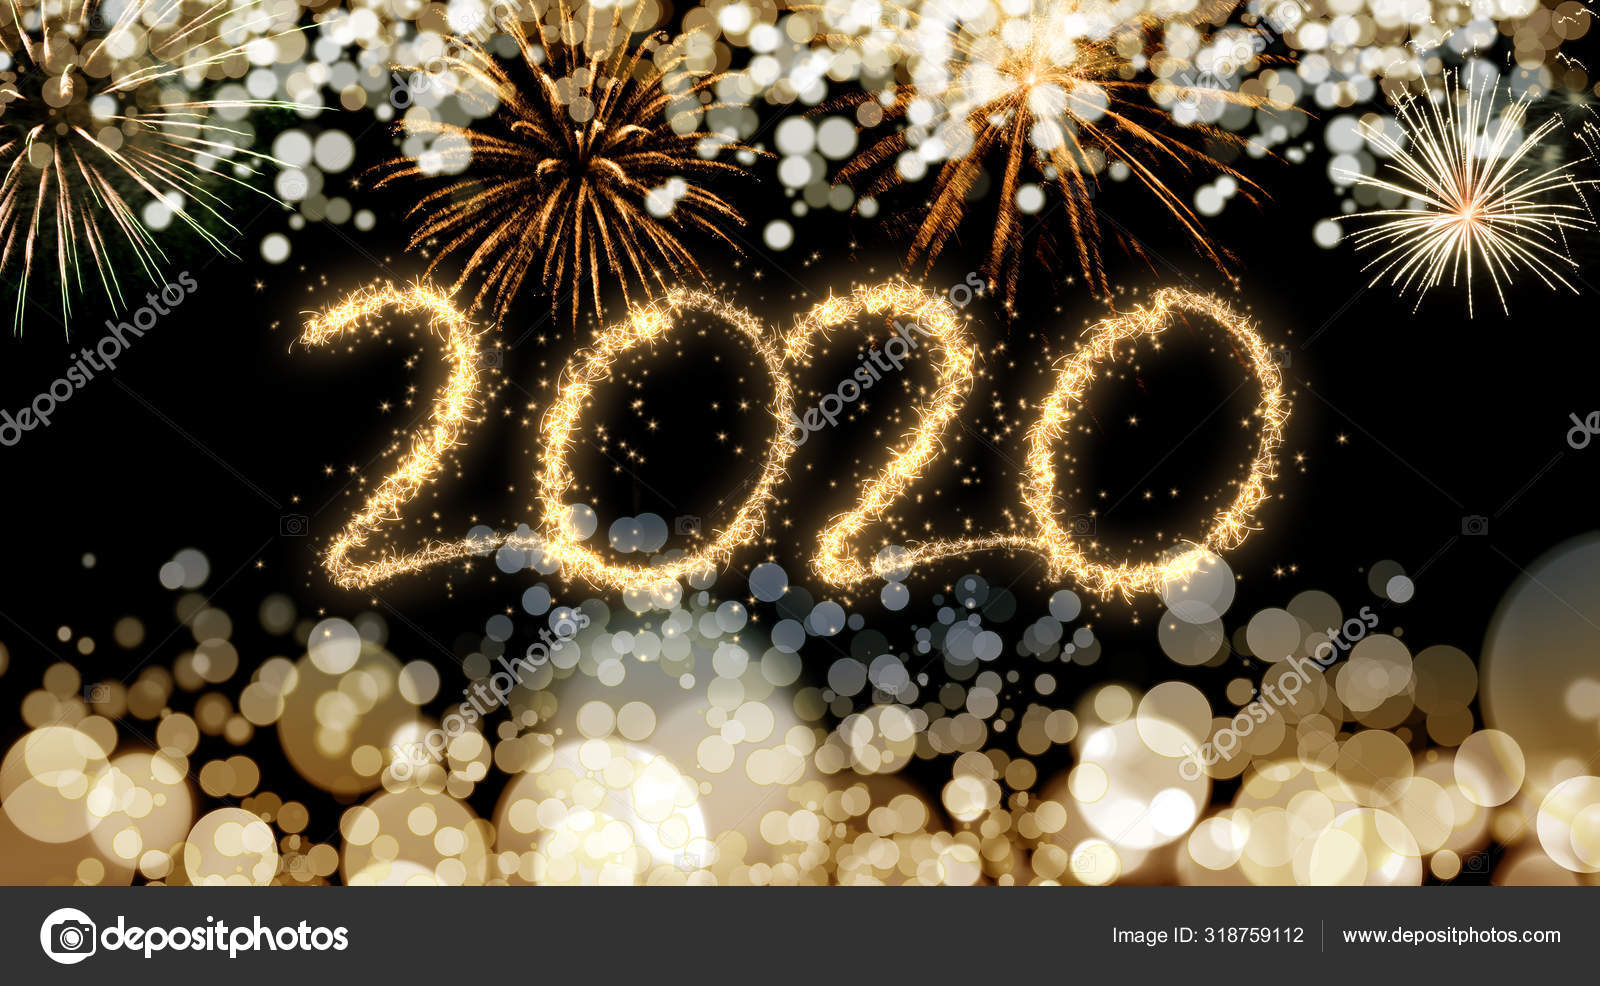 ᐈ new years backgrounds stock backgrounds royalty free new year backgrounds photos download on depositphotos ᐈ new years backgrounds stock backgrounds royalty free new year backgrounds photos download on depositphotos